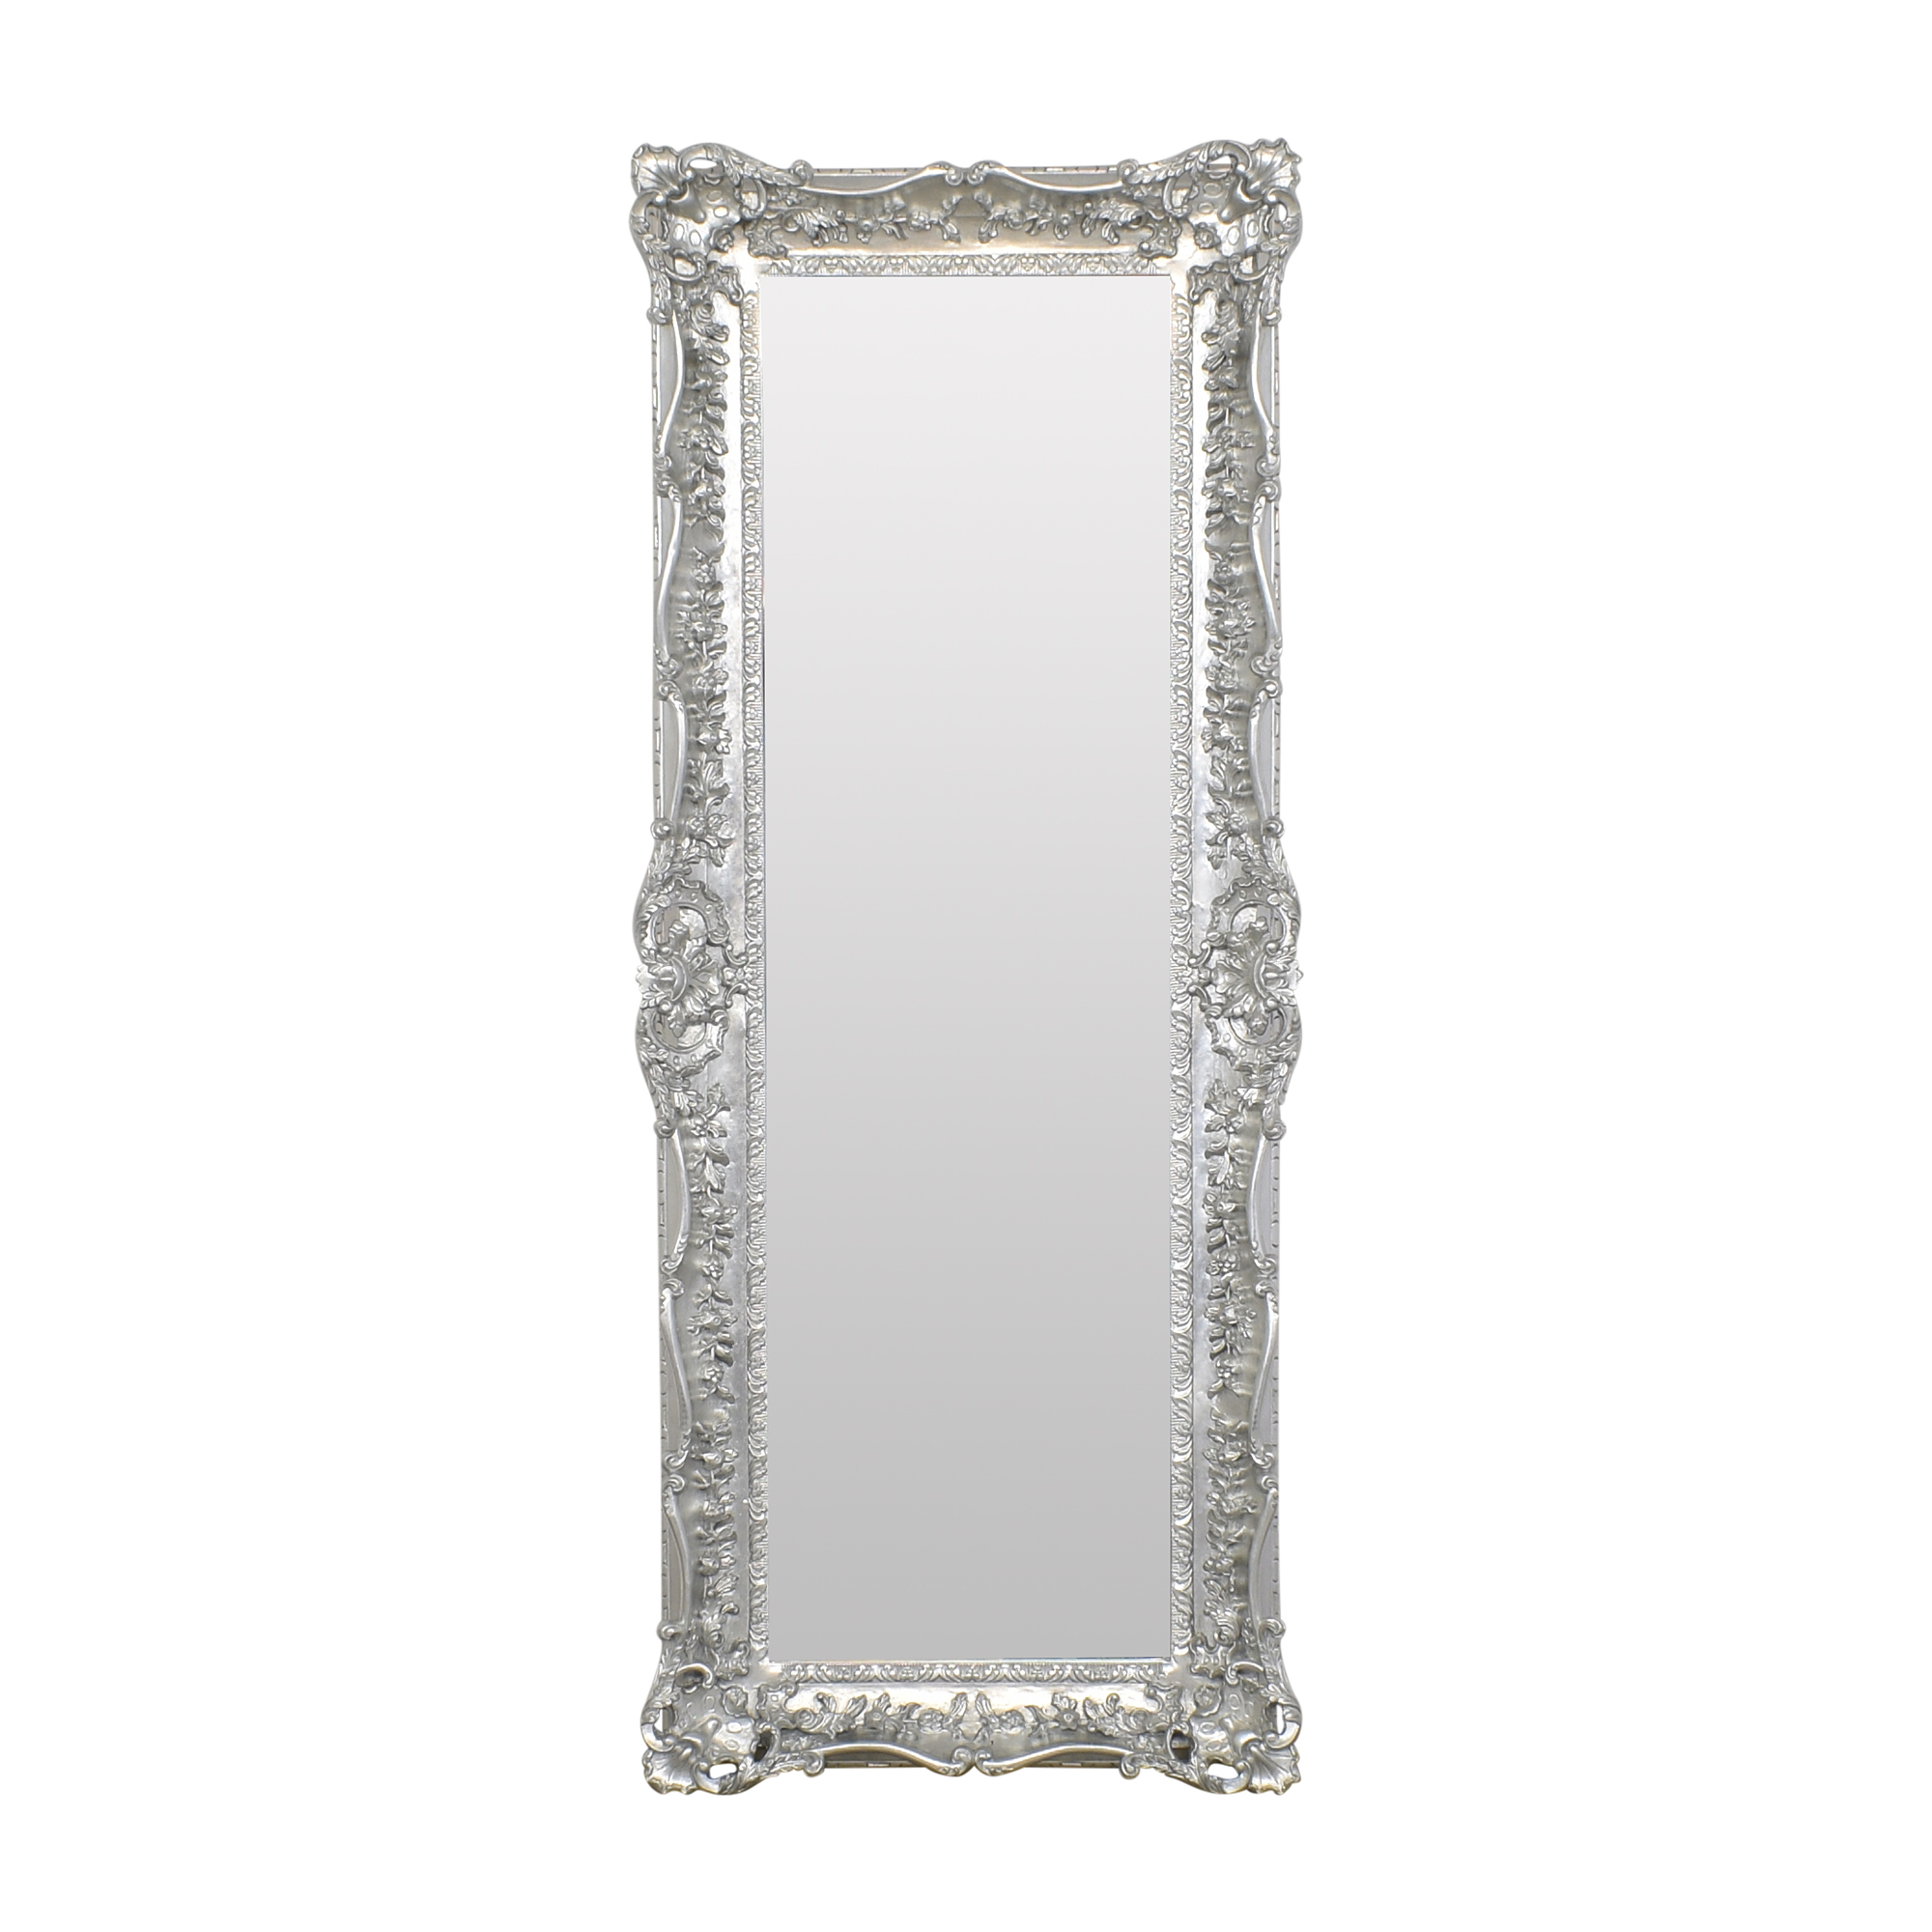 buy Brocade Home Brocade Home Ruffle Edge Mirror online